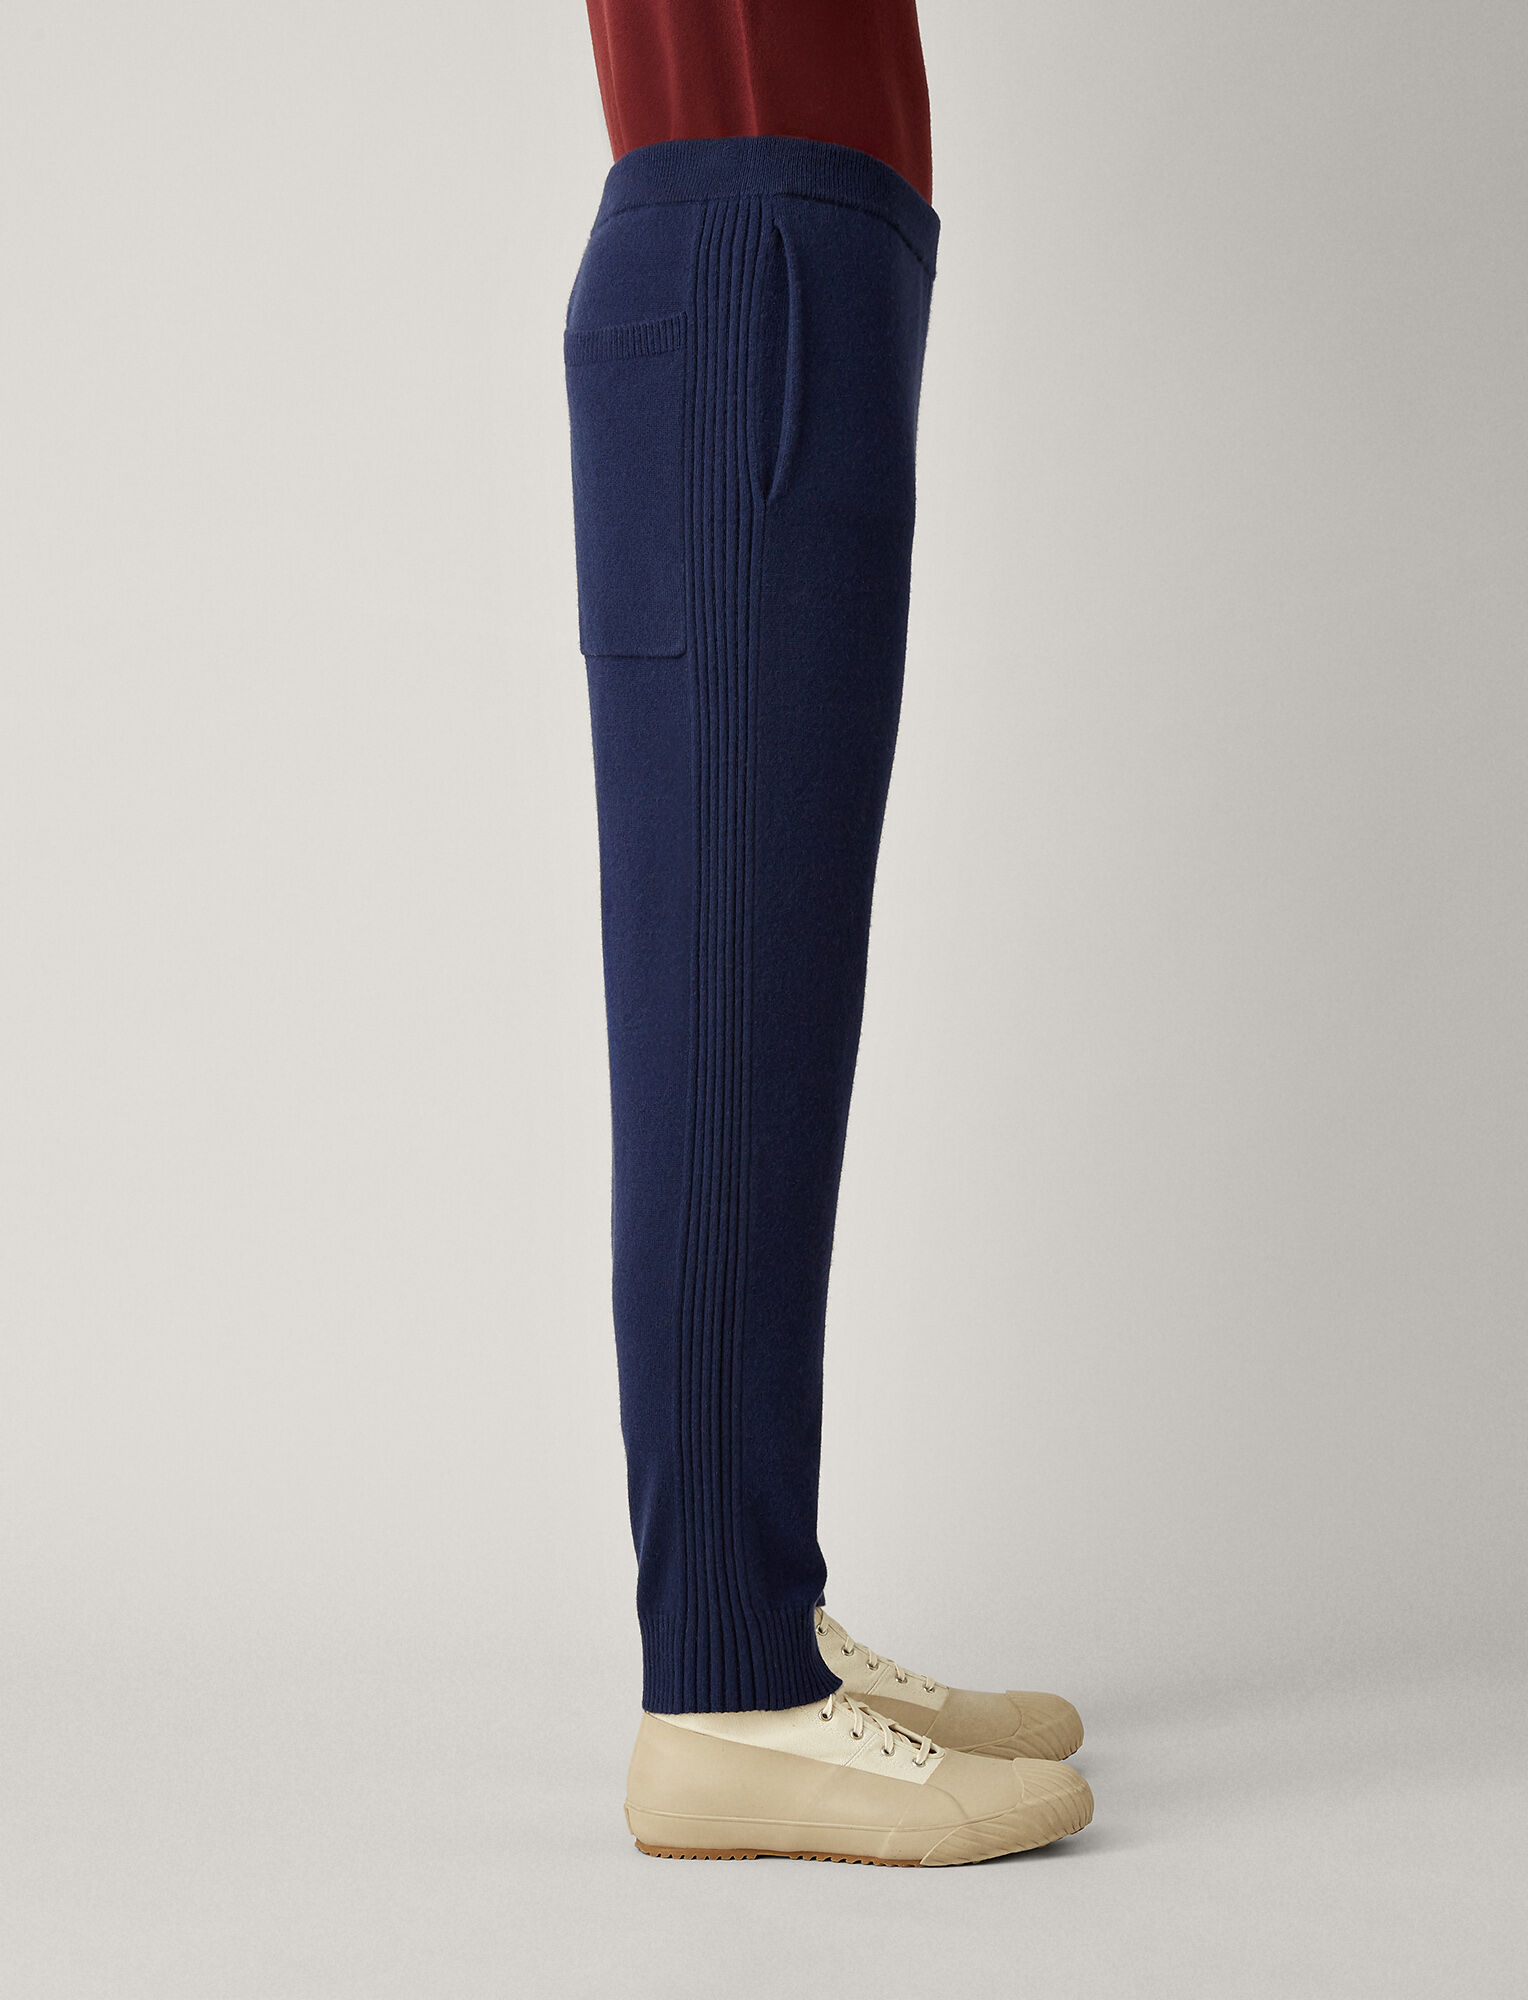 Joseph, Mongolian Cashmere Knit Jog, in ROYAL BLUE